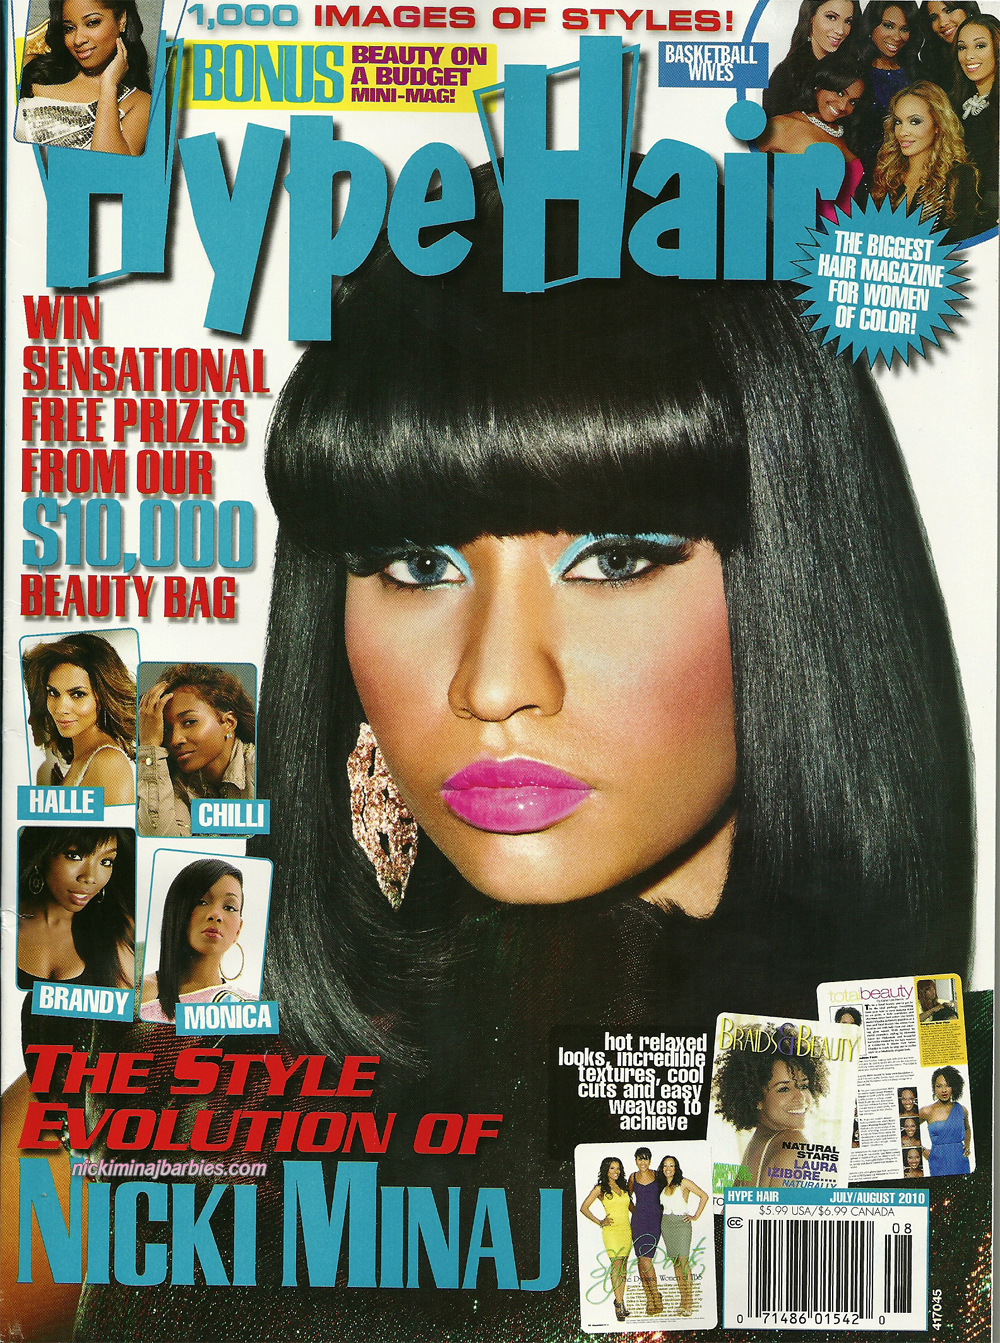 HYPE HAIR, THE ALL NEW, OCTOBER, 2014 (100'S OF WAYS TO STYLE YOUR HAIR ! )